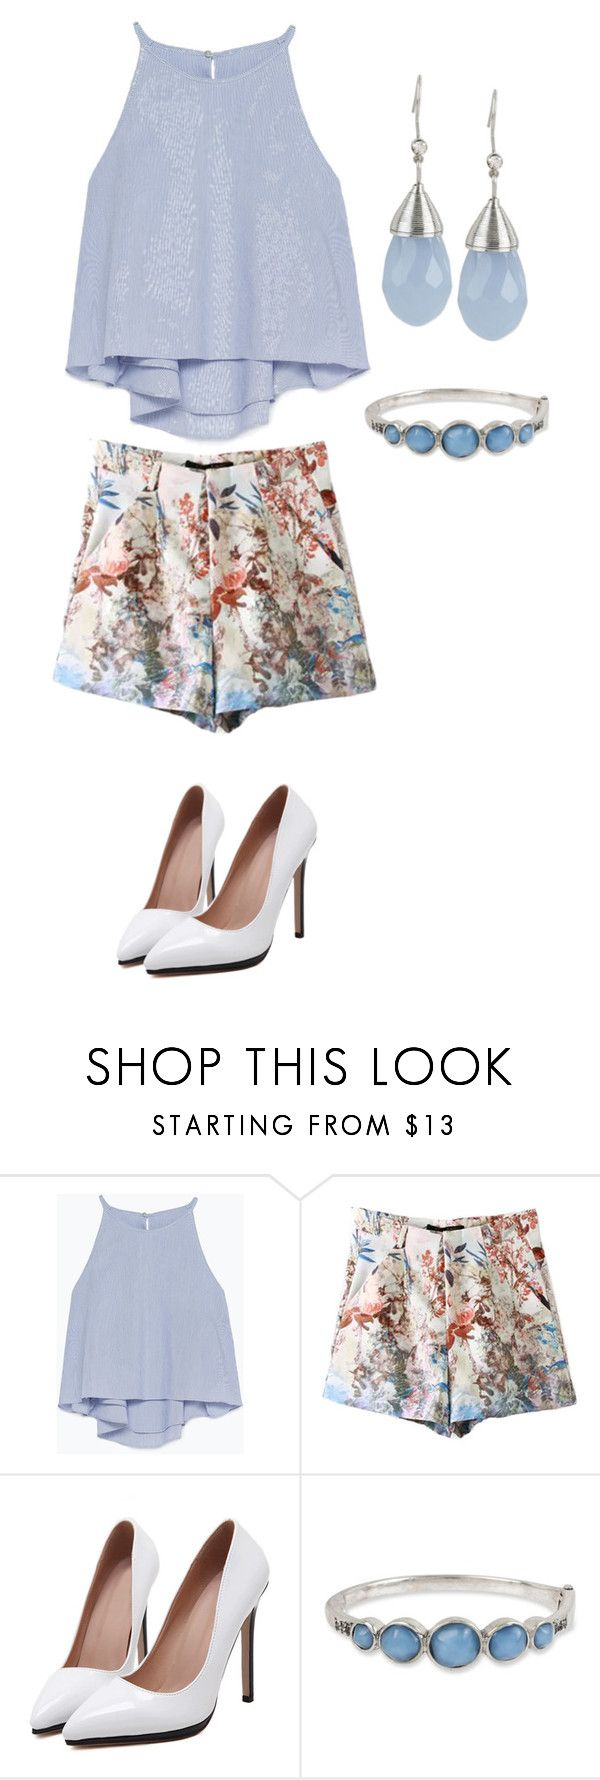 """""""Jane The Virgin inspired"""" by purplexskies ❤ liked on Polyvore featuring Zara, Kenneth Cole and INC International Concepts"""